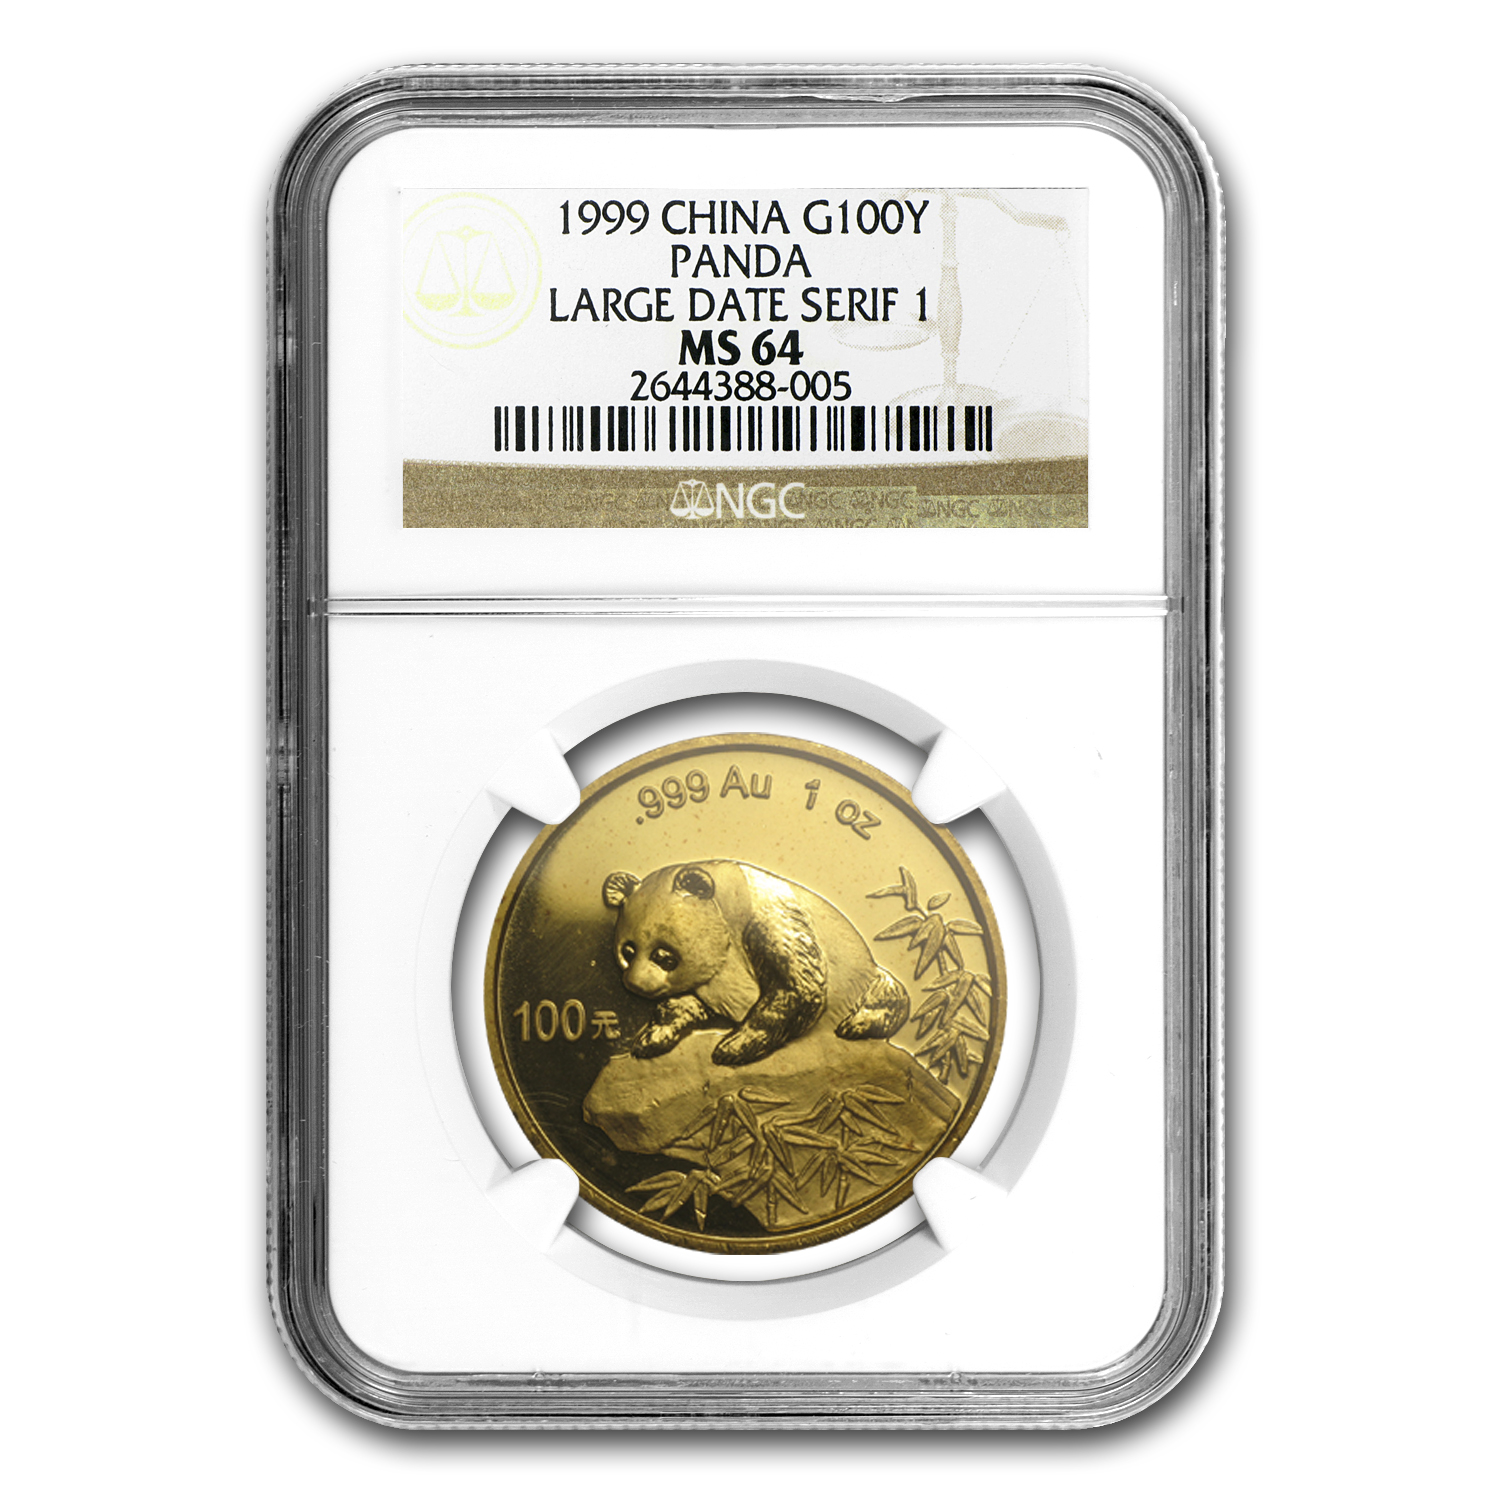 1999 China 1 oz Gold Panda Large Date/Serif 1 MS-64 NGC